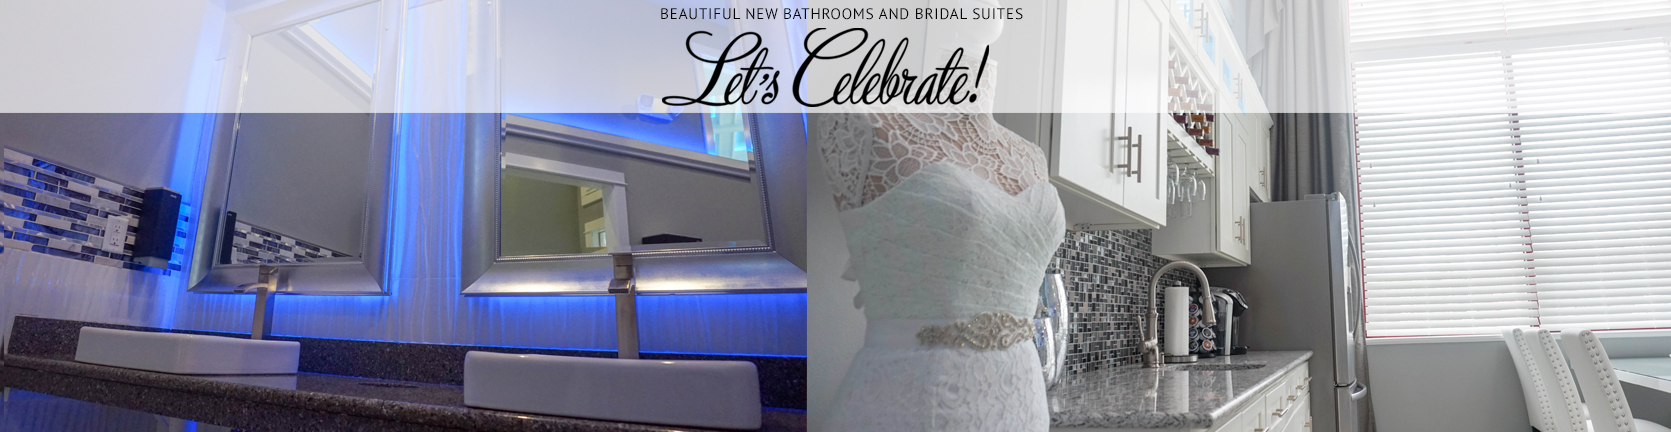 BridalSuiteBathrooms_homepage